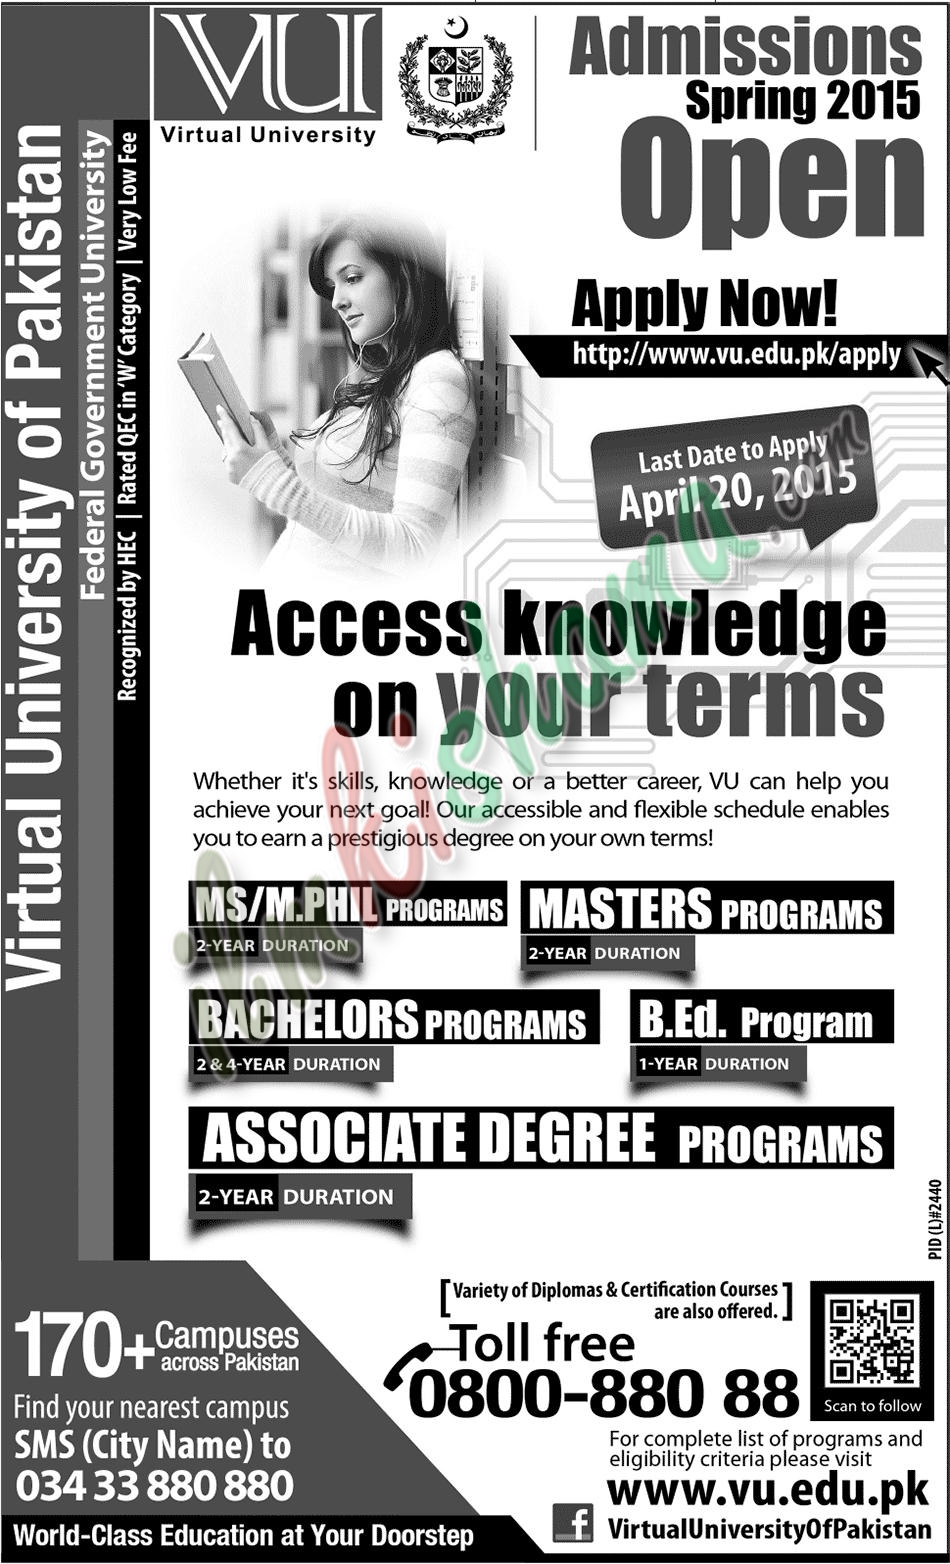 Virtual University of Pakistan Admissions